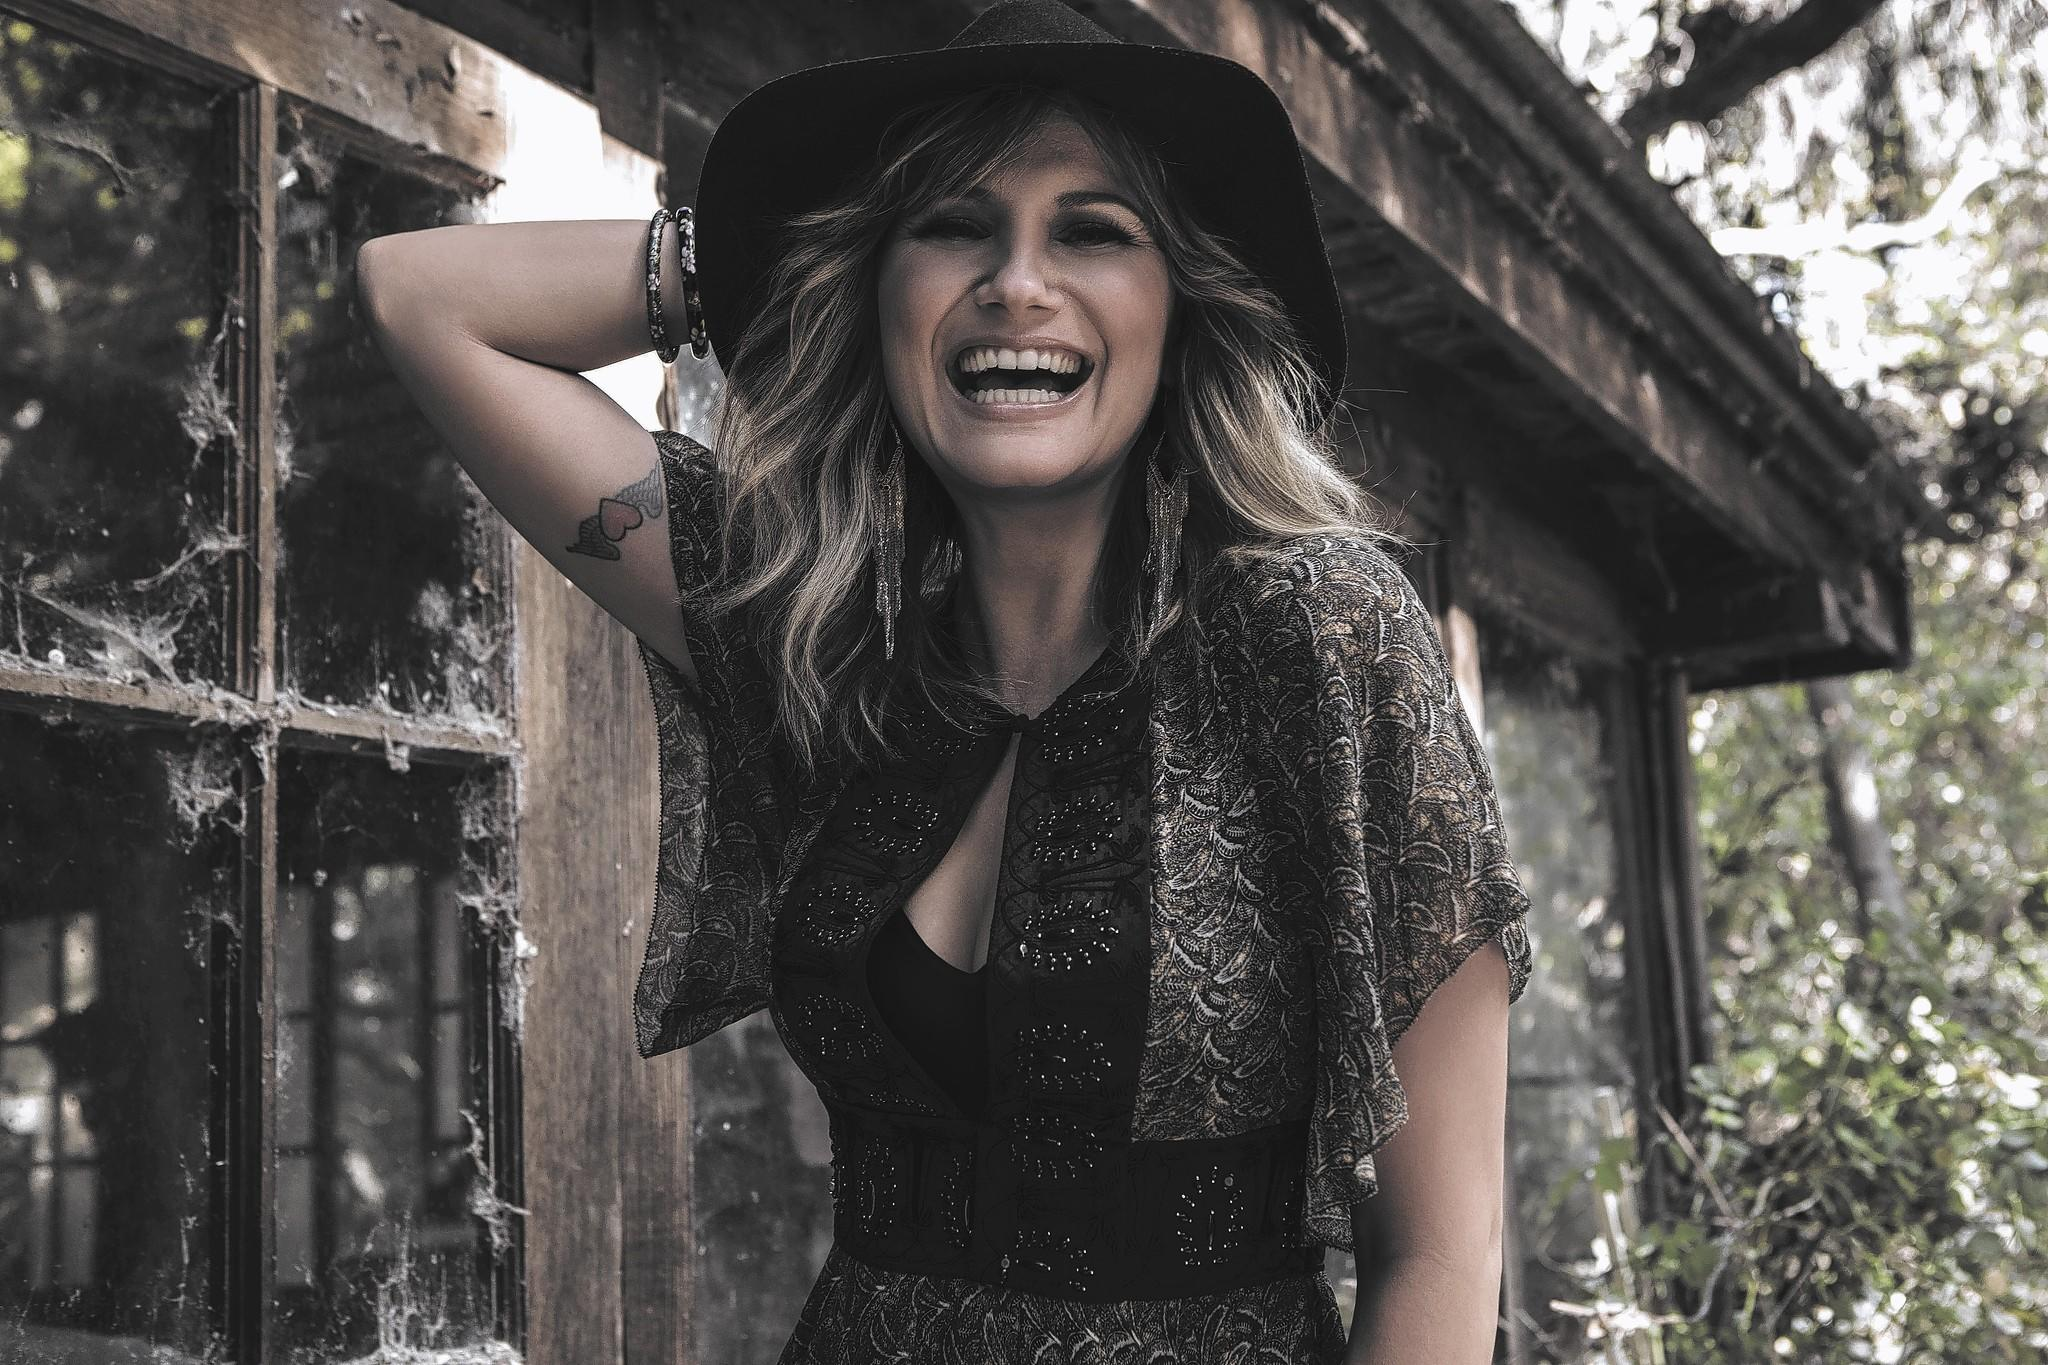 Jennifer Nettles will showcase songs from her solo debut album on Friday at Hard Rock Live in Orlando.